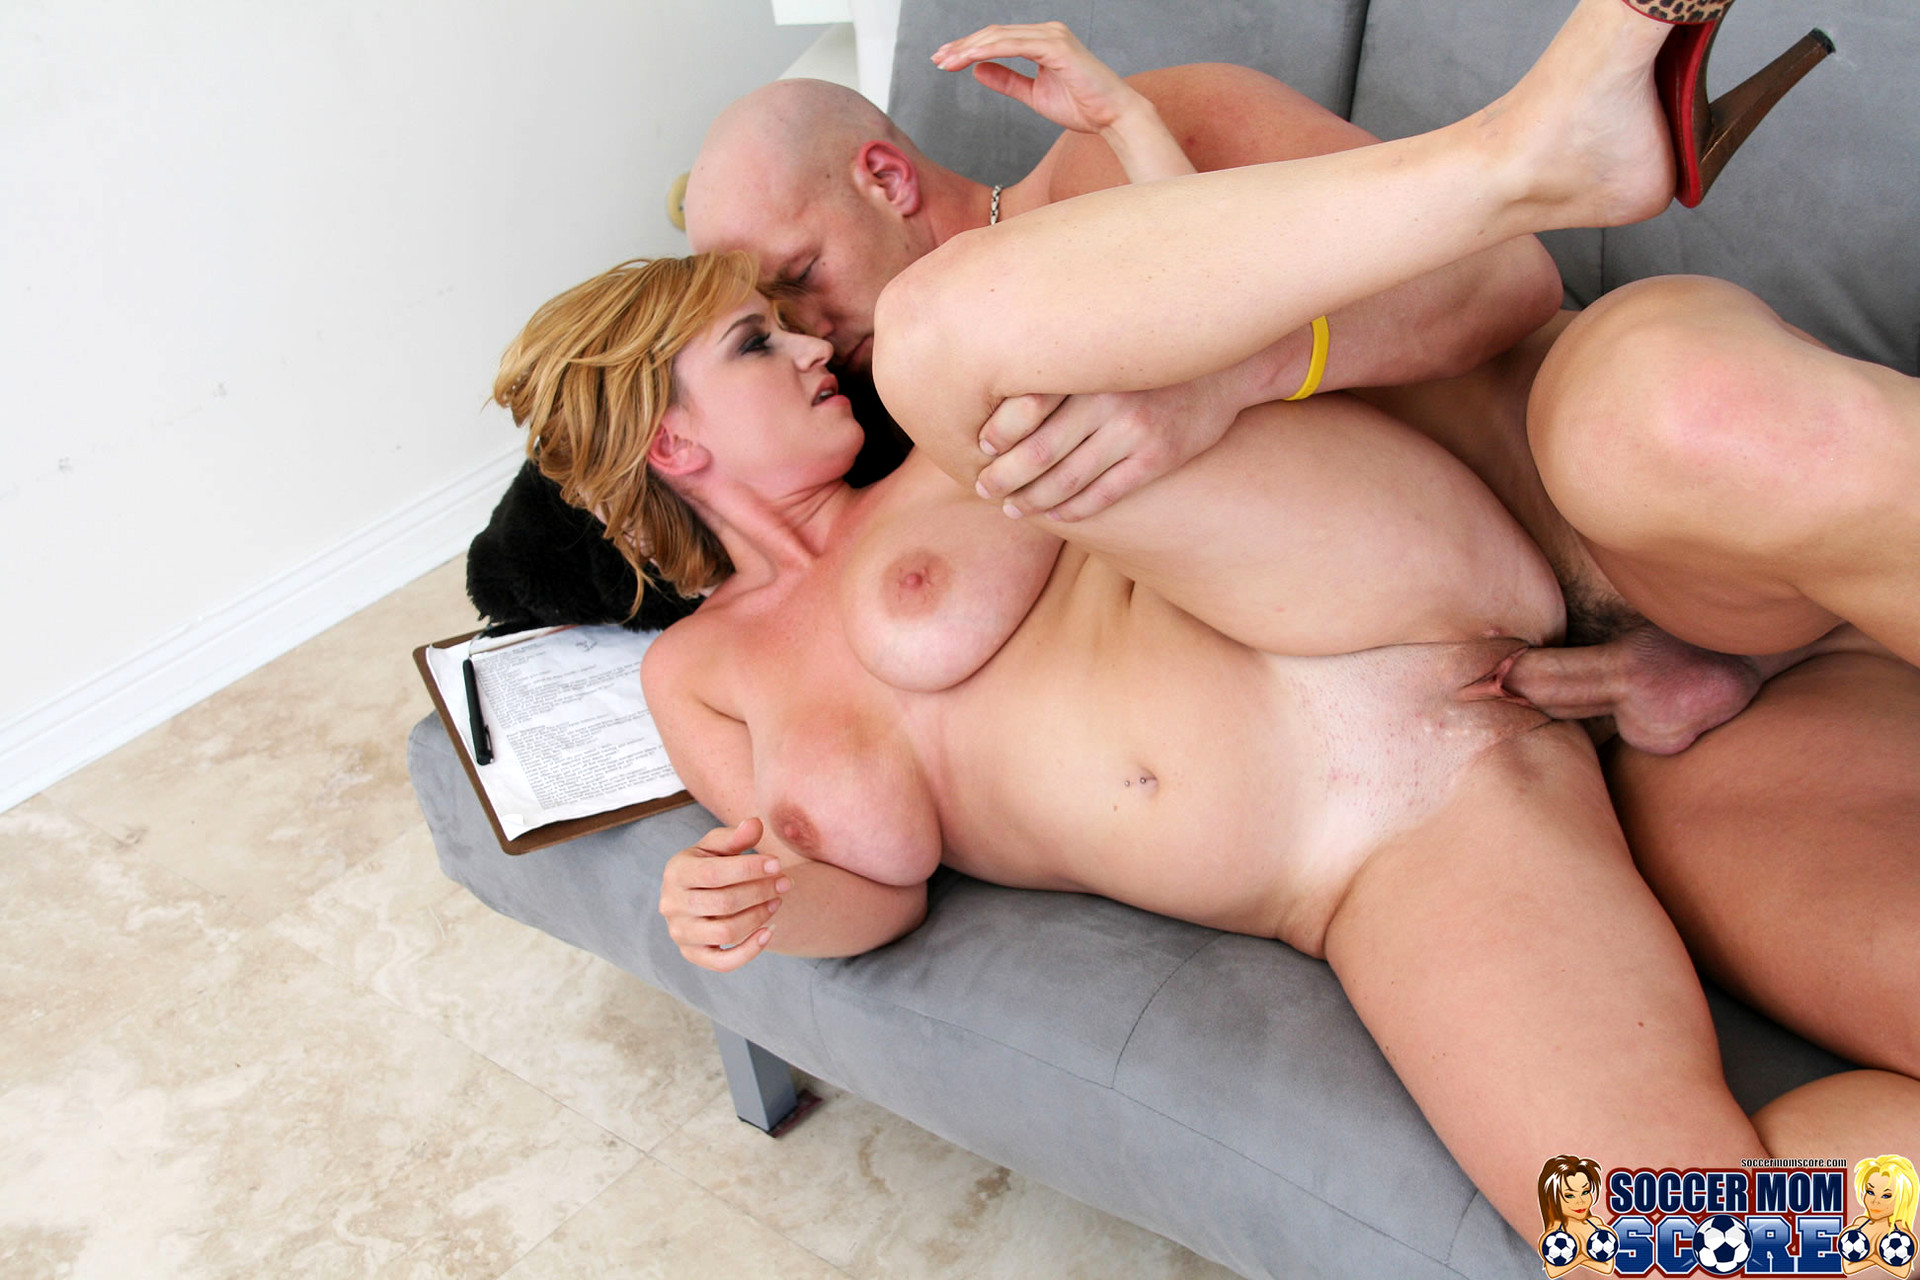 Daughter mother fucking infront of husband mobile download porn pics